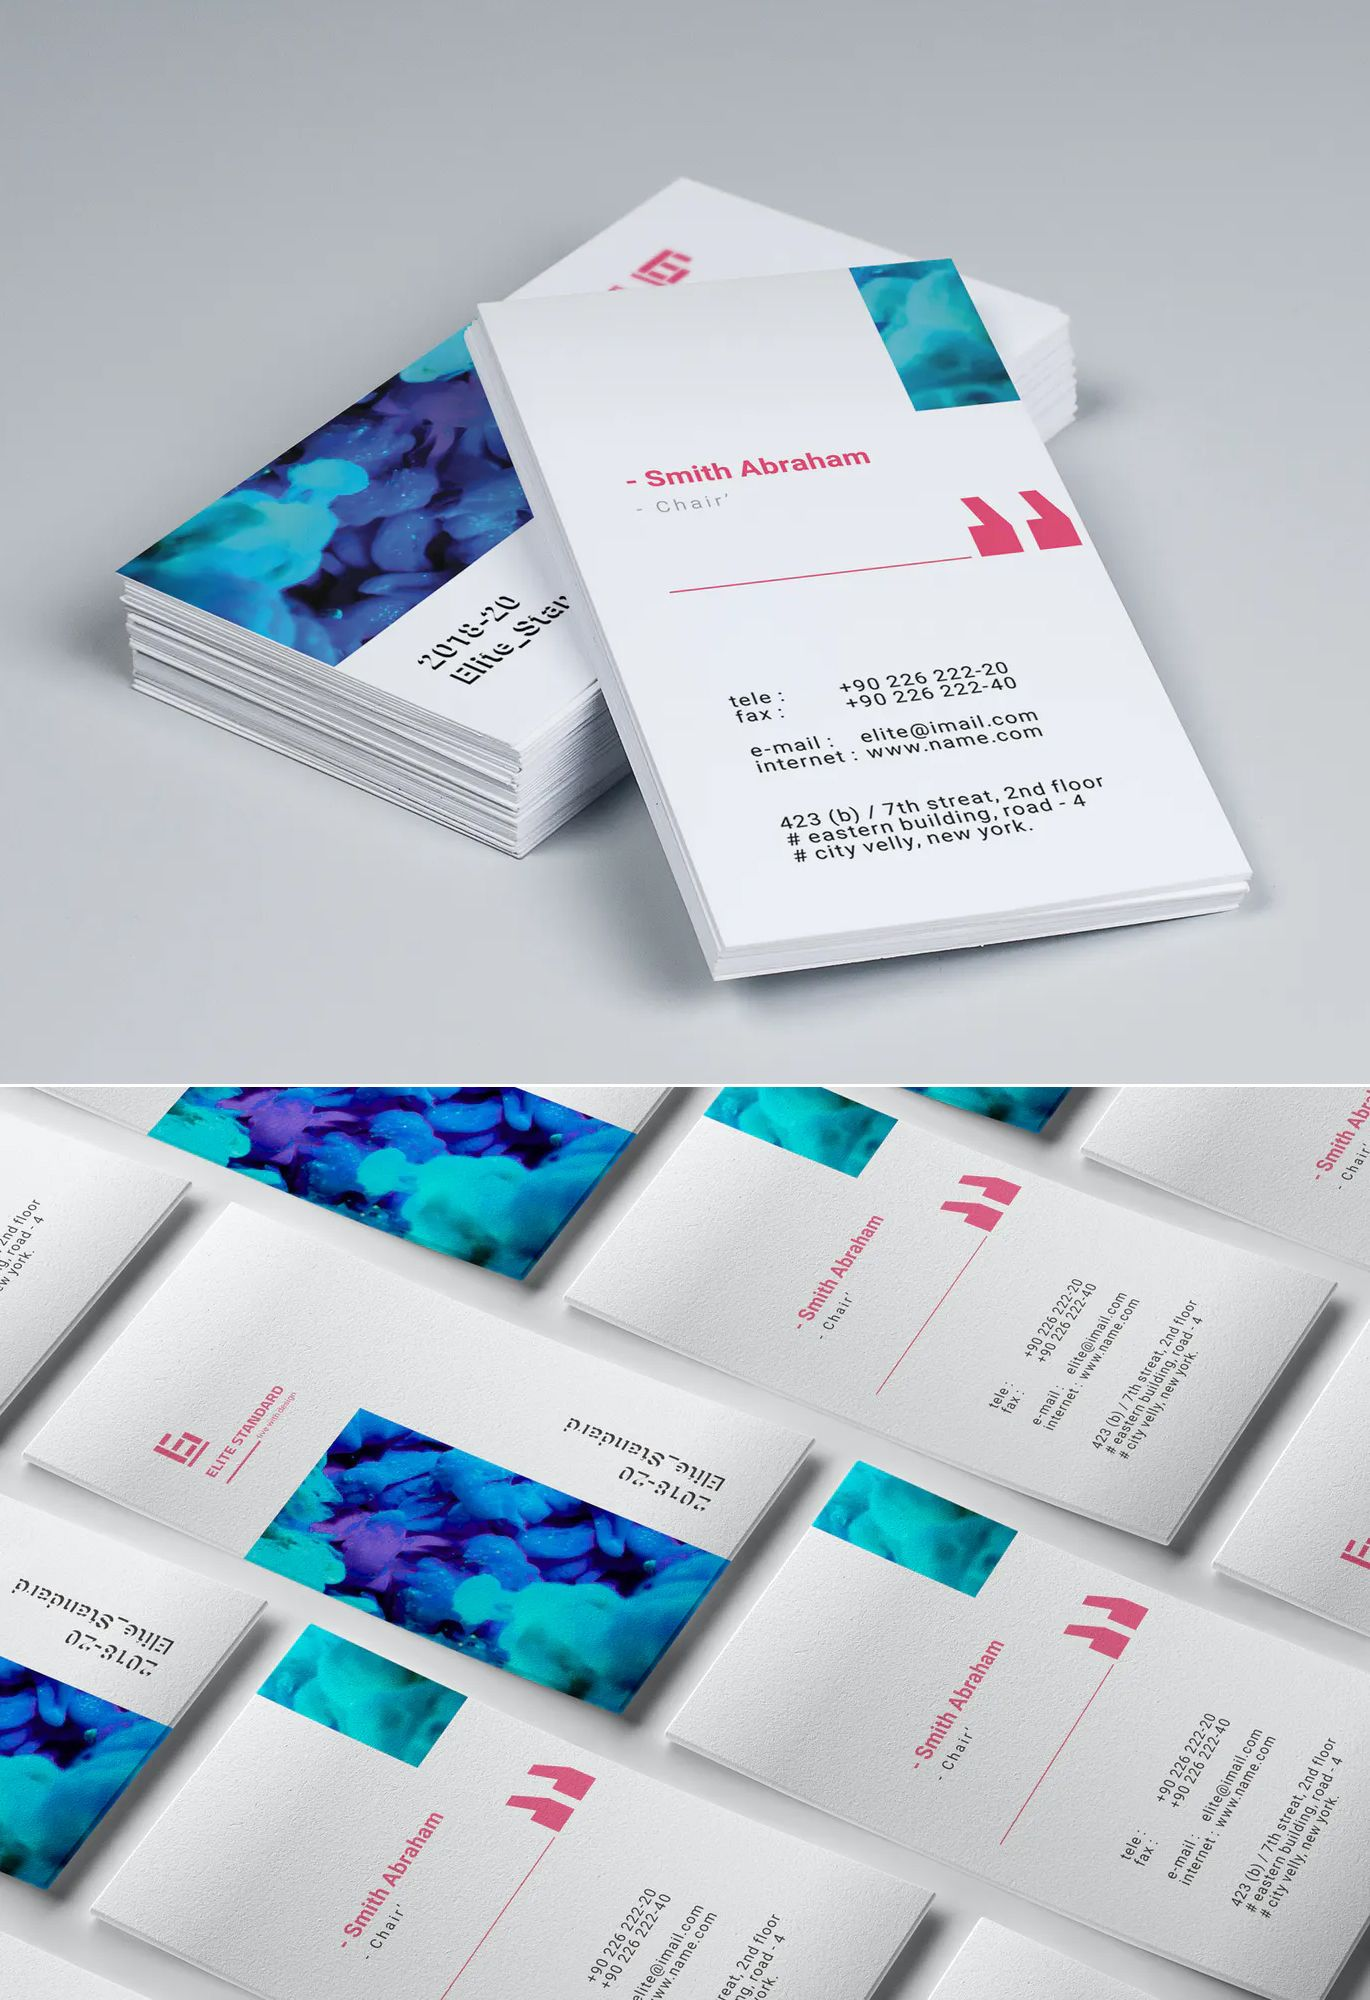 Studio Business Card Template In 2020 Business Card Template Design Business Card Template Business Cards